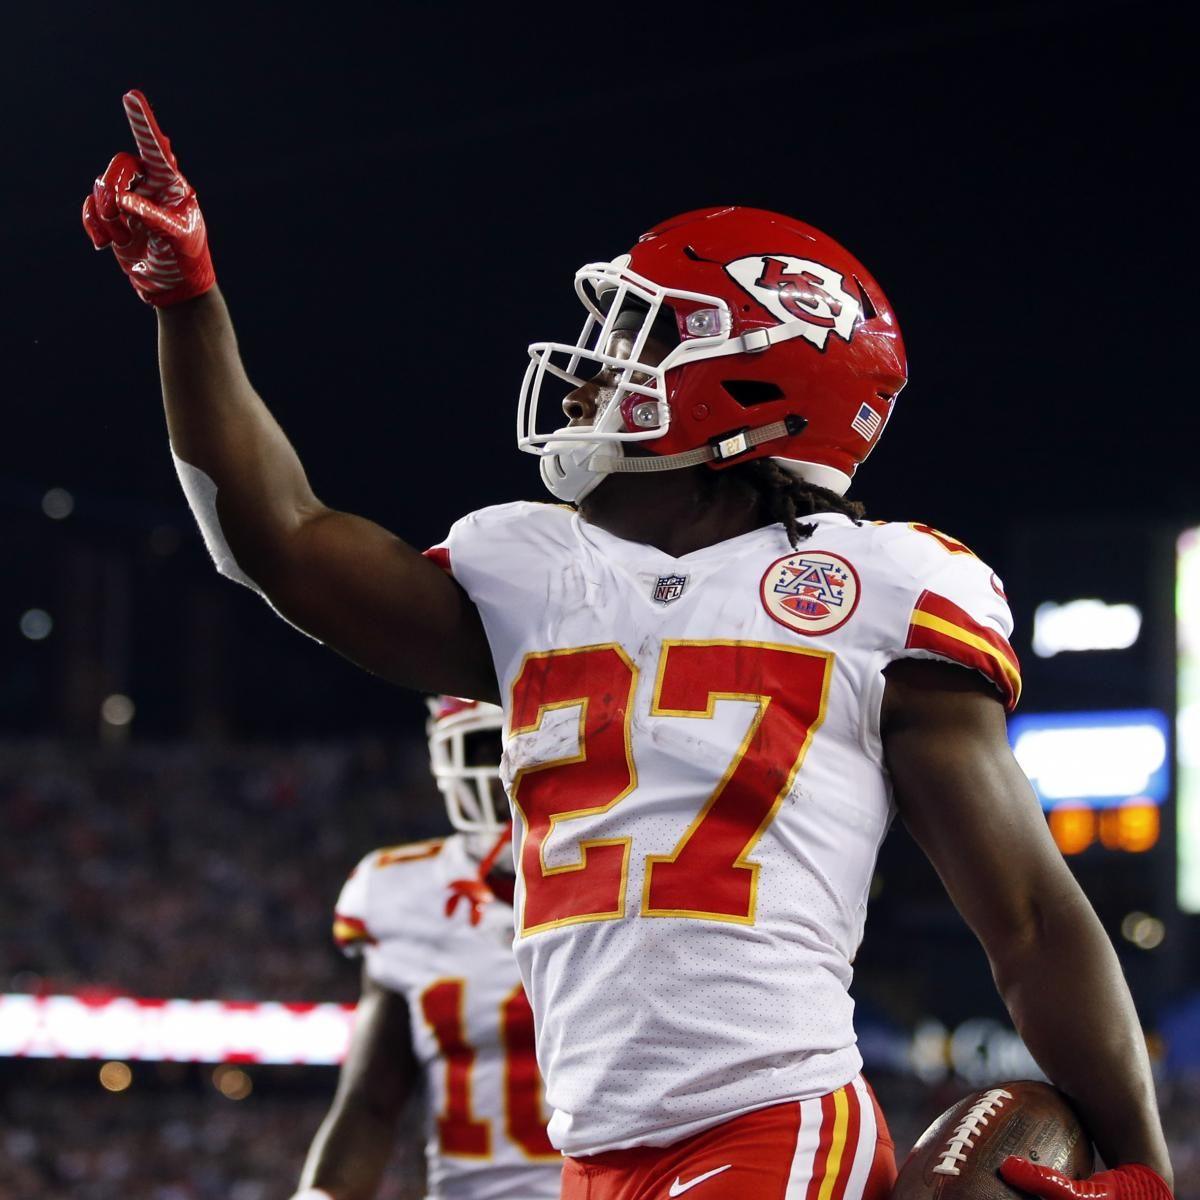 Kareem Hunt Sets Nfl Record With 246 Yards From Scrimmage In Debut Kansas City Chiefs Football Kansas City Chiefs Kansas City Chiefs Apparel